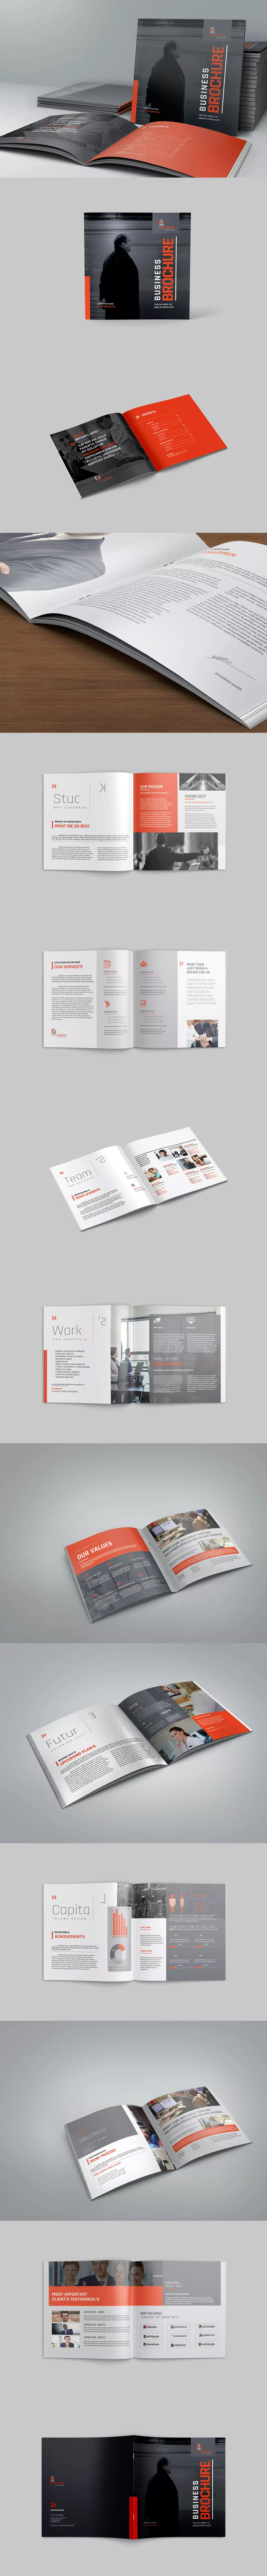 Square Brochure Template InDesign INDD | Brochures | Pinterest ...